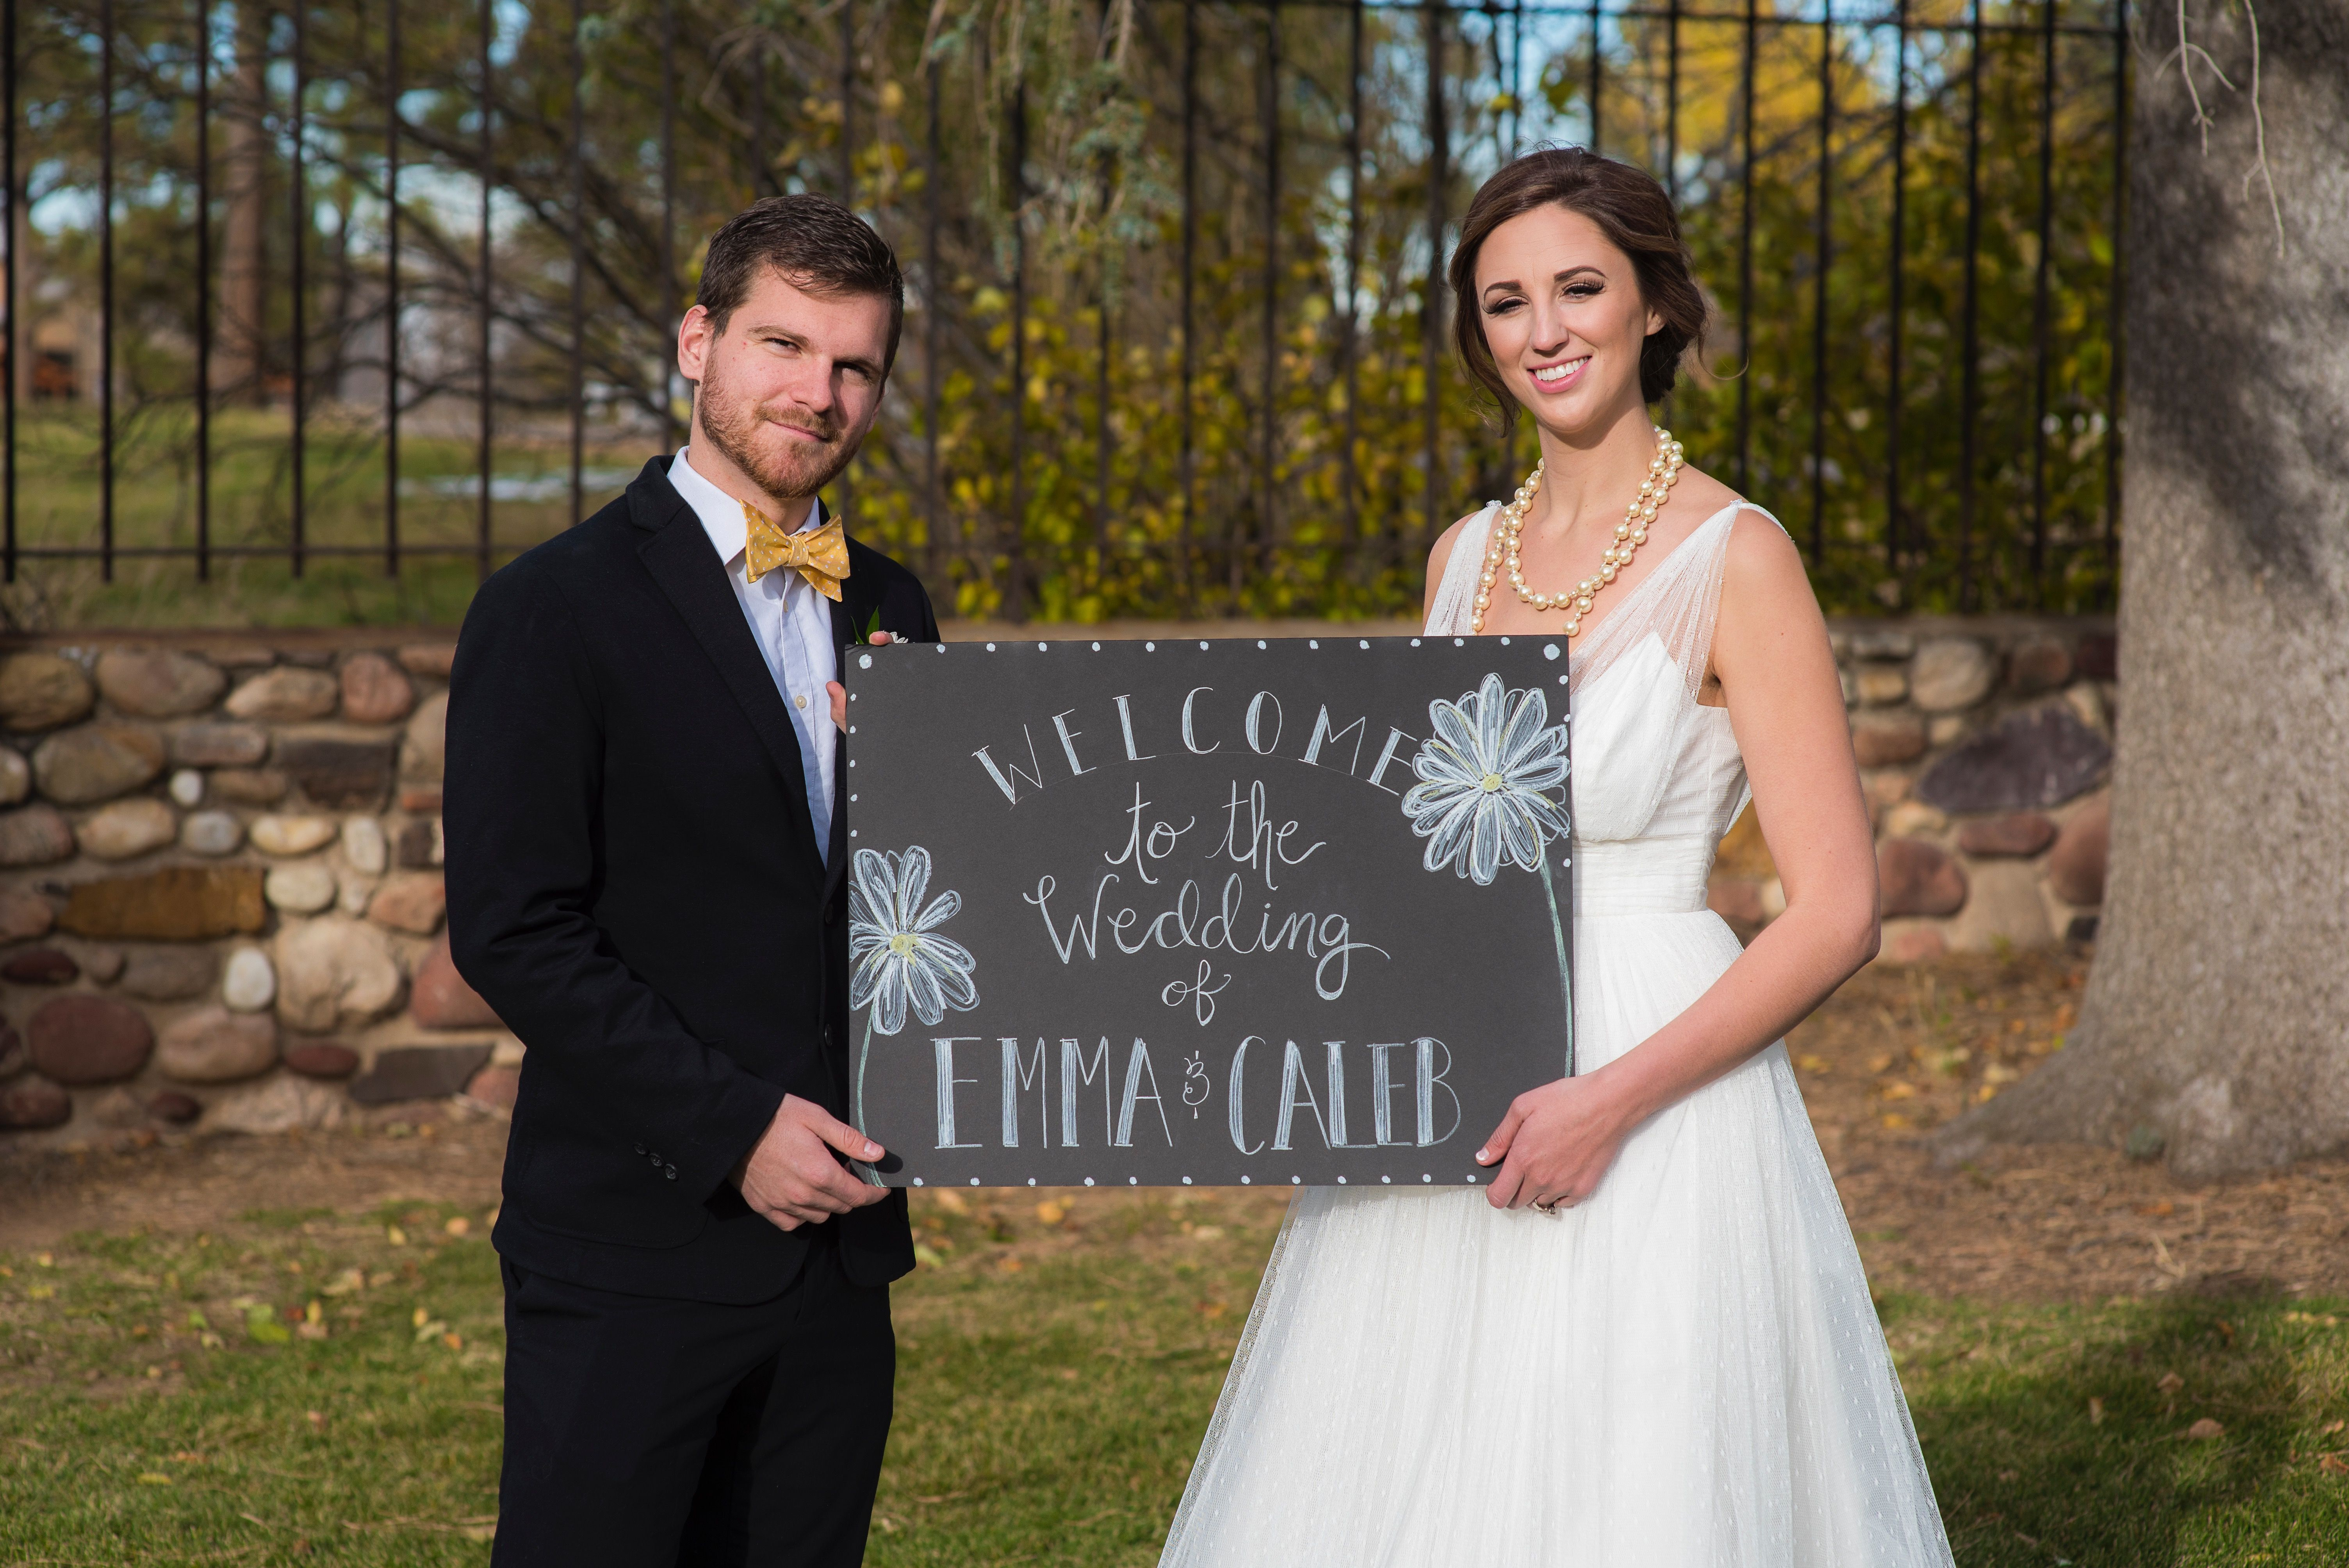 Yellow Wedding Daisies Bride and Grown Wedding Photography Yellow Bow Tie - Yellow Spring Wedding WTOO Wedding Gown Wedding Welcome Sign by: Poco Post Photo by: Modified PhotoGraphics PRESENTED BY WHITE DAISY EVENTS